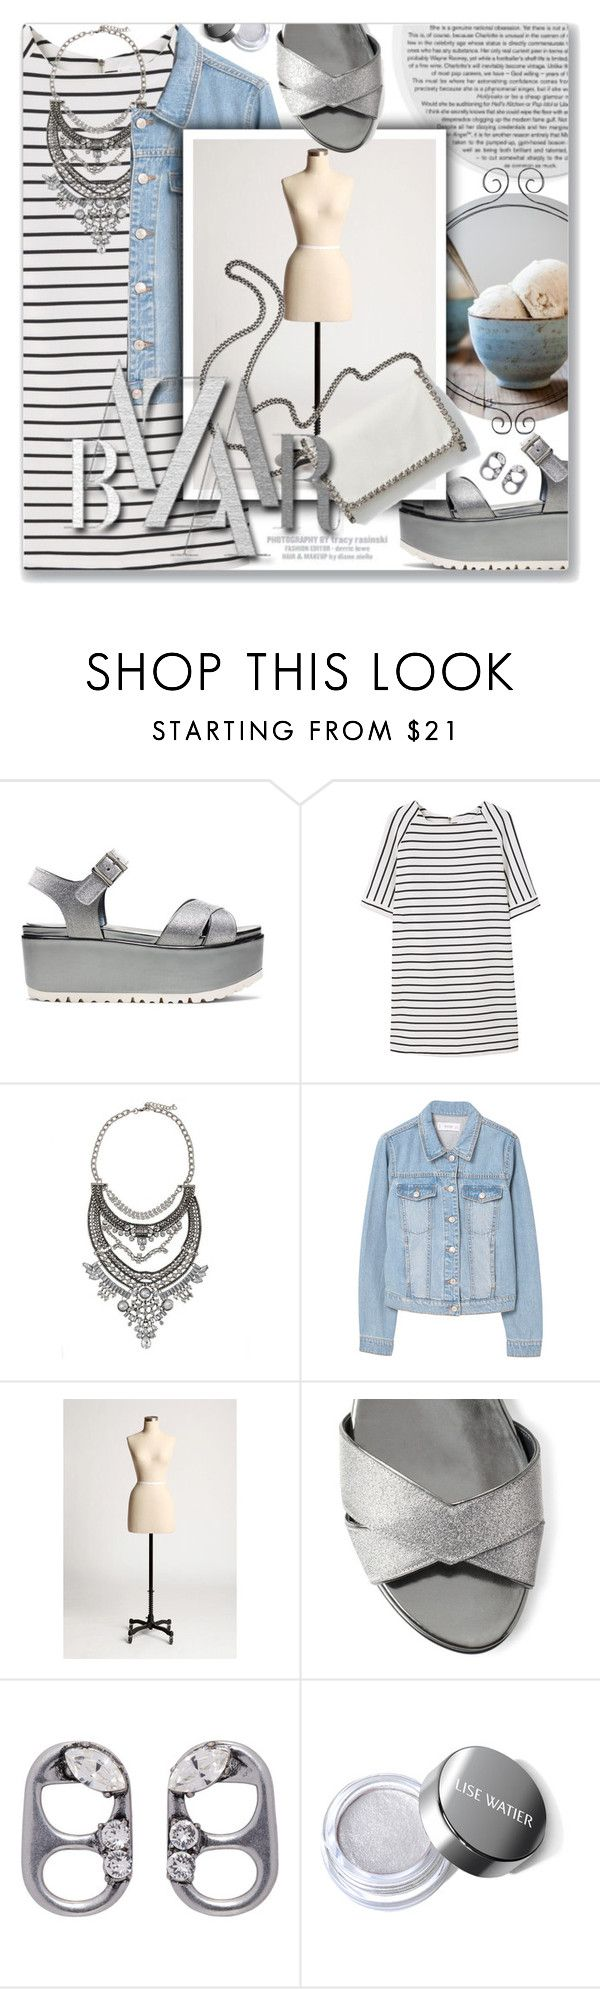 """""""Subirusdoistiozin, Criolo"""" by blendasantos ❤ liked on Polyvore featuring Stuart Weitzman, MANGO, Urban Outfitters, STELLA McCARTNEY and Marc Jacobs"""